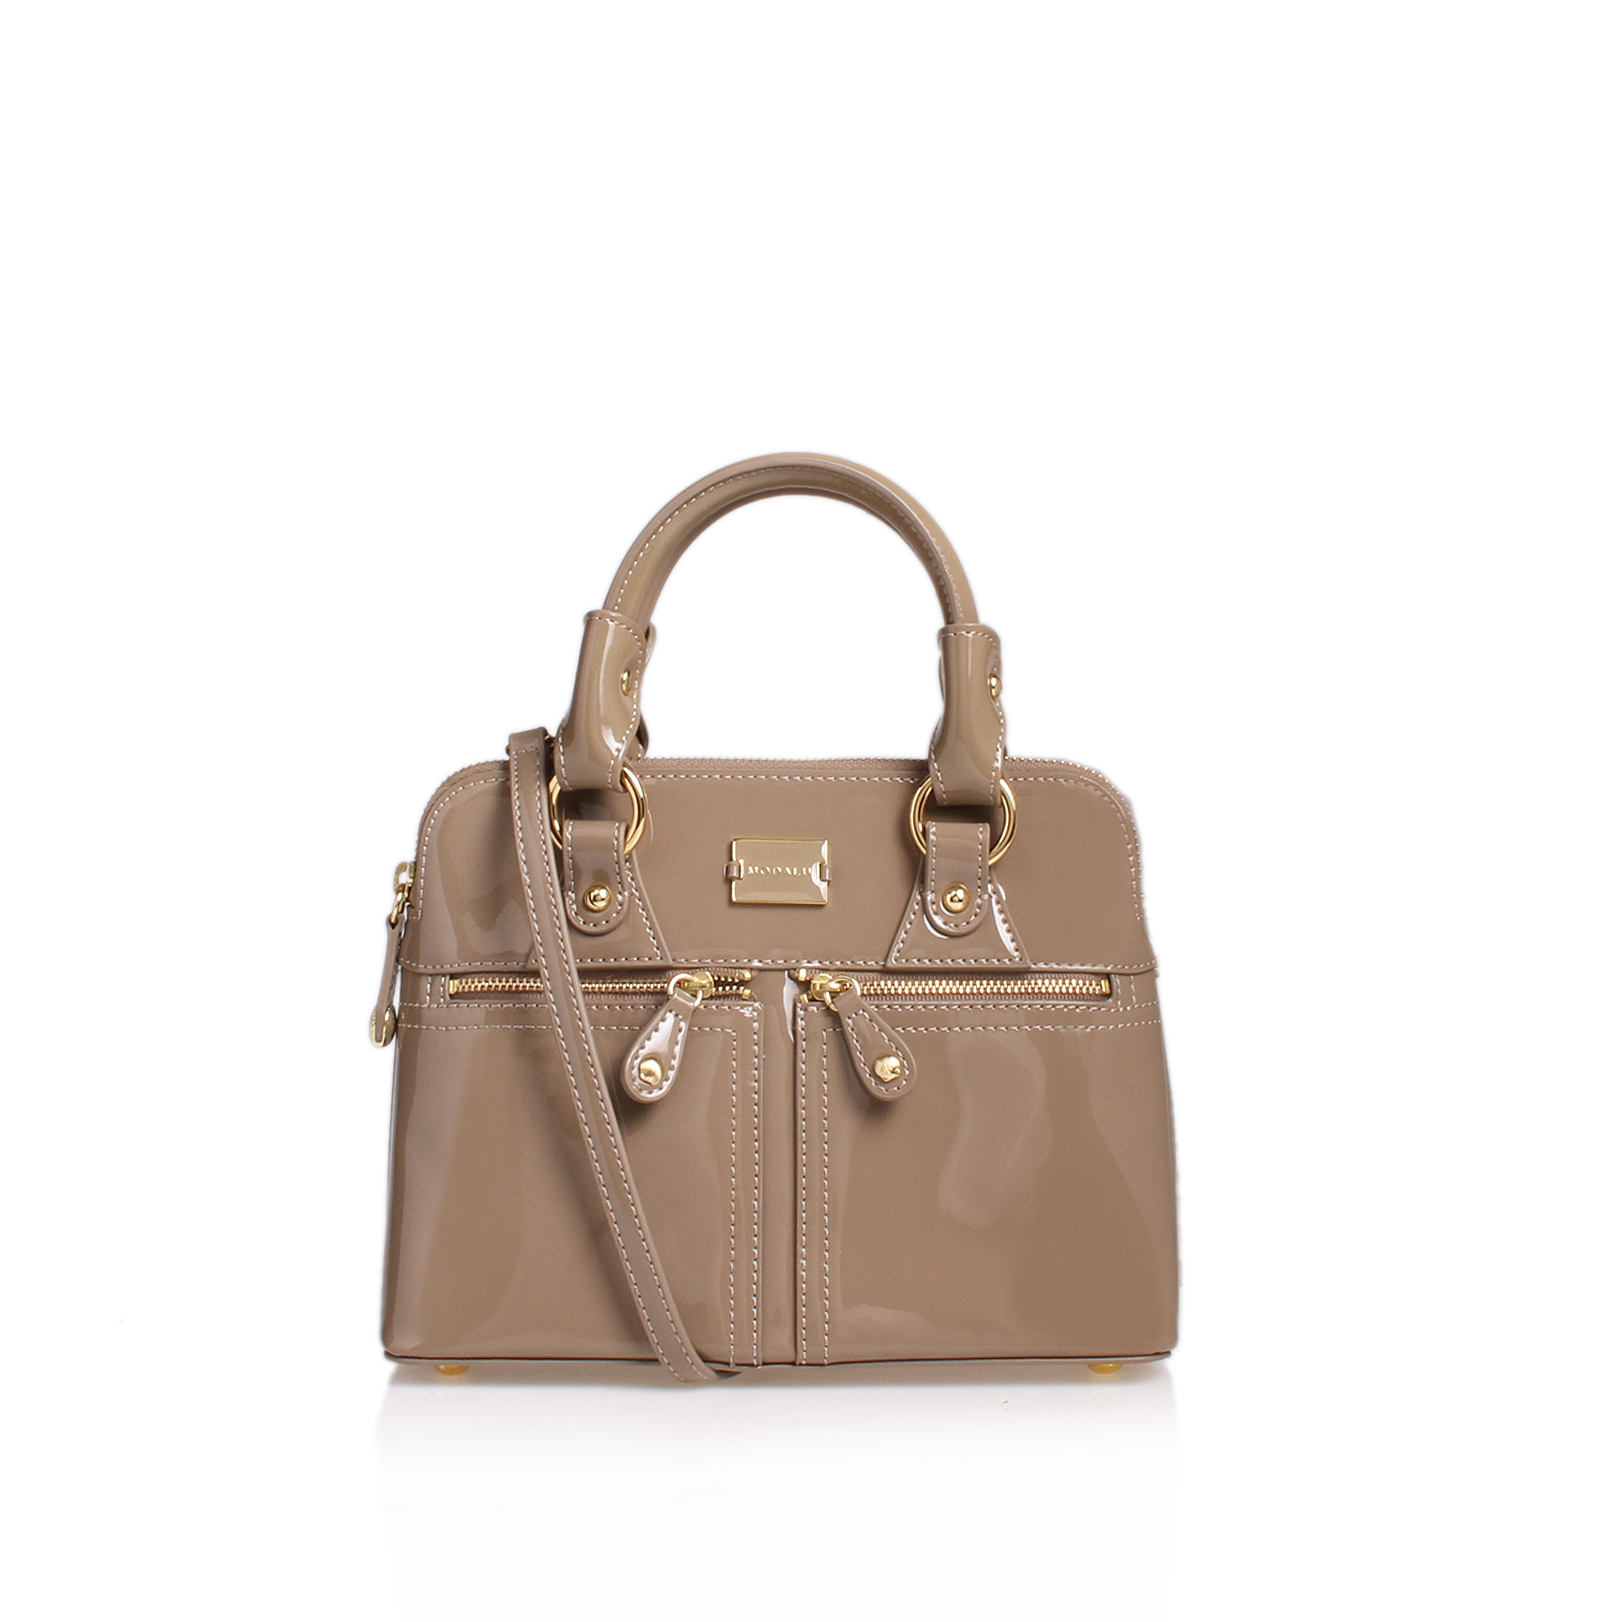 PIPPA 3 LEATHER BAG